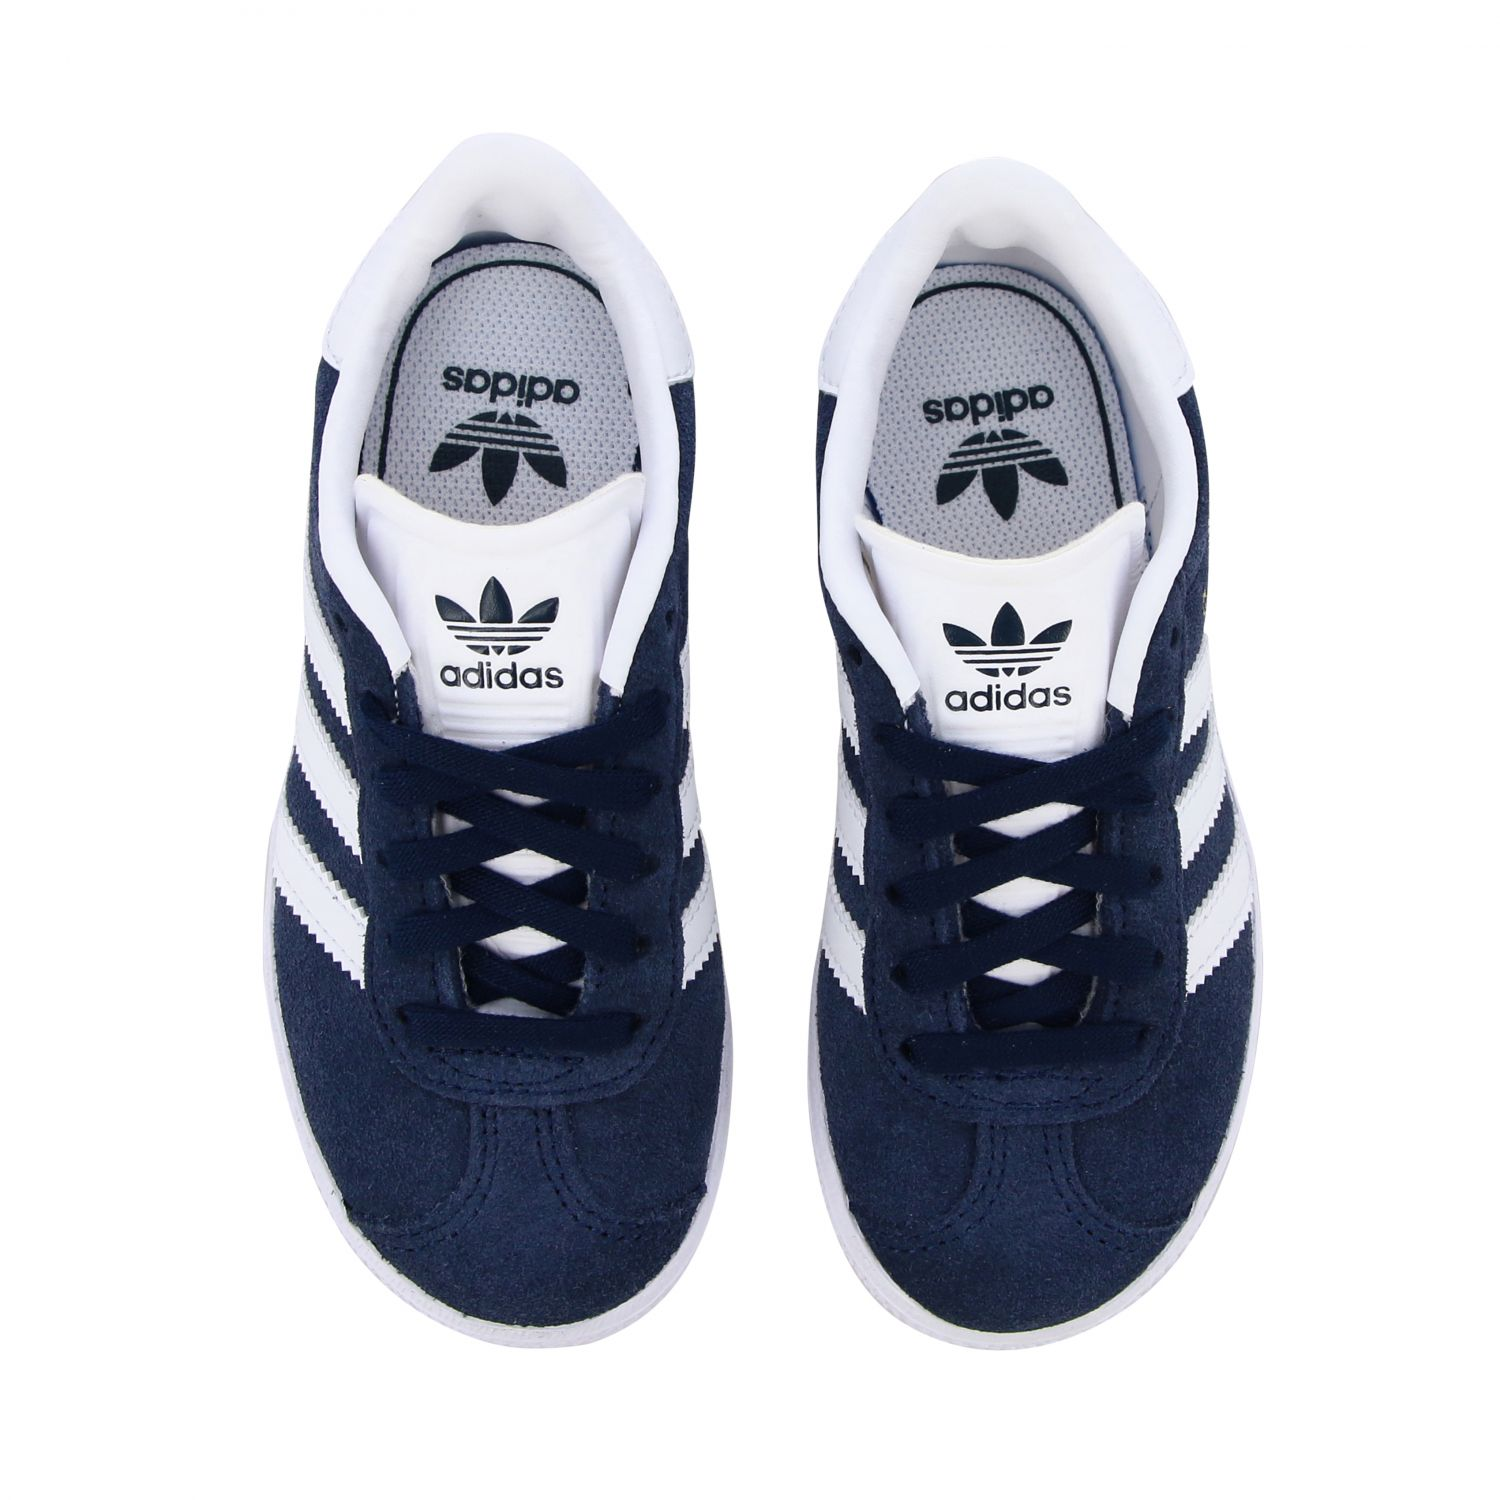 Shoes Adidas Originals: Gazelle C Adidas Originals sneakers in suede and leather blue 3